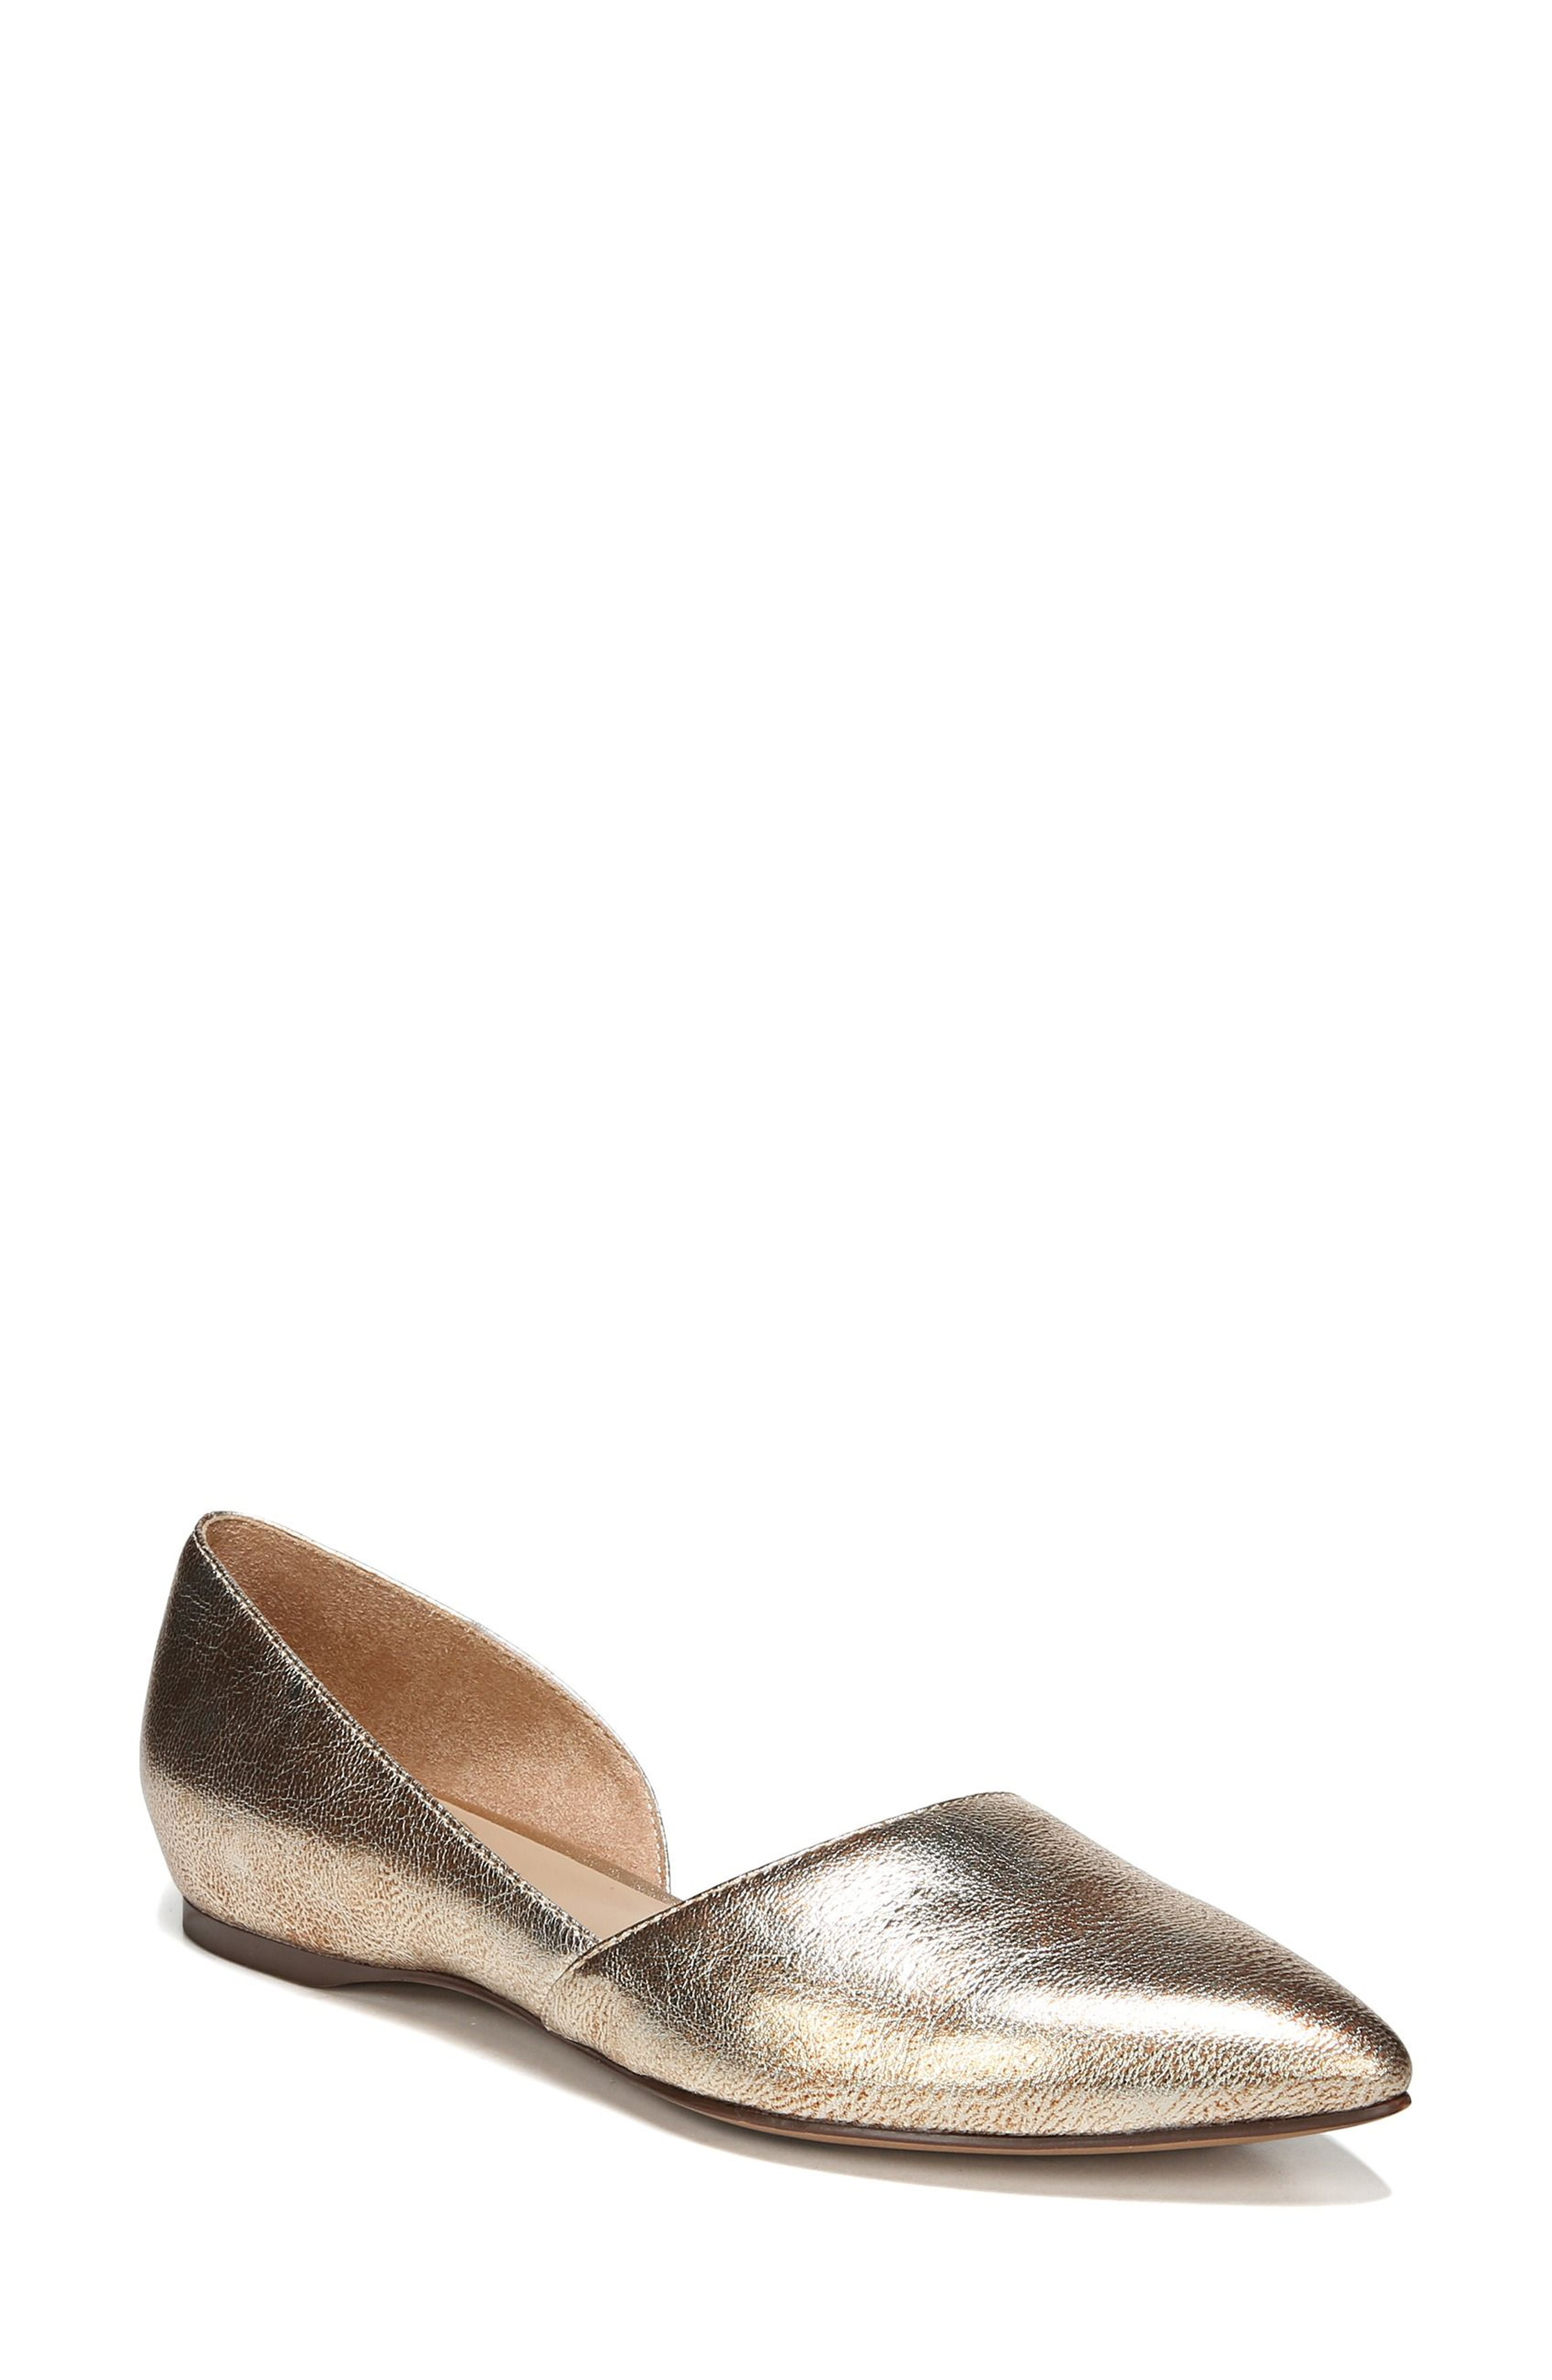 gold flats | Nordstrom